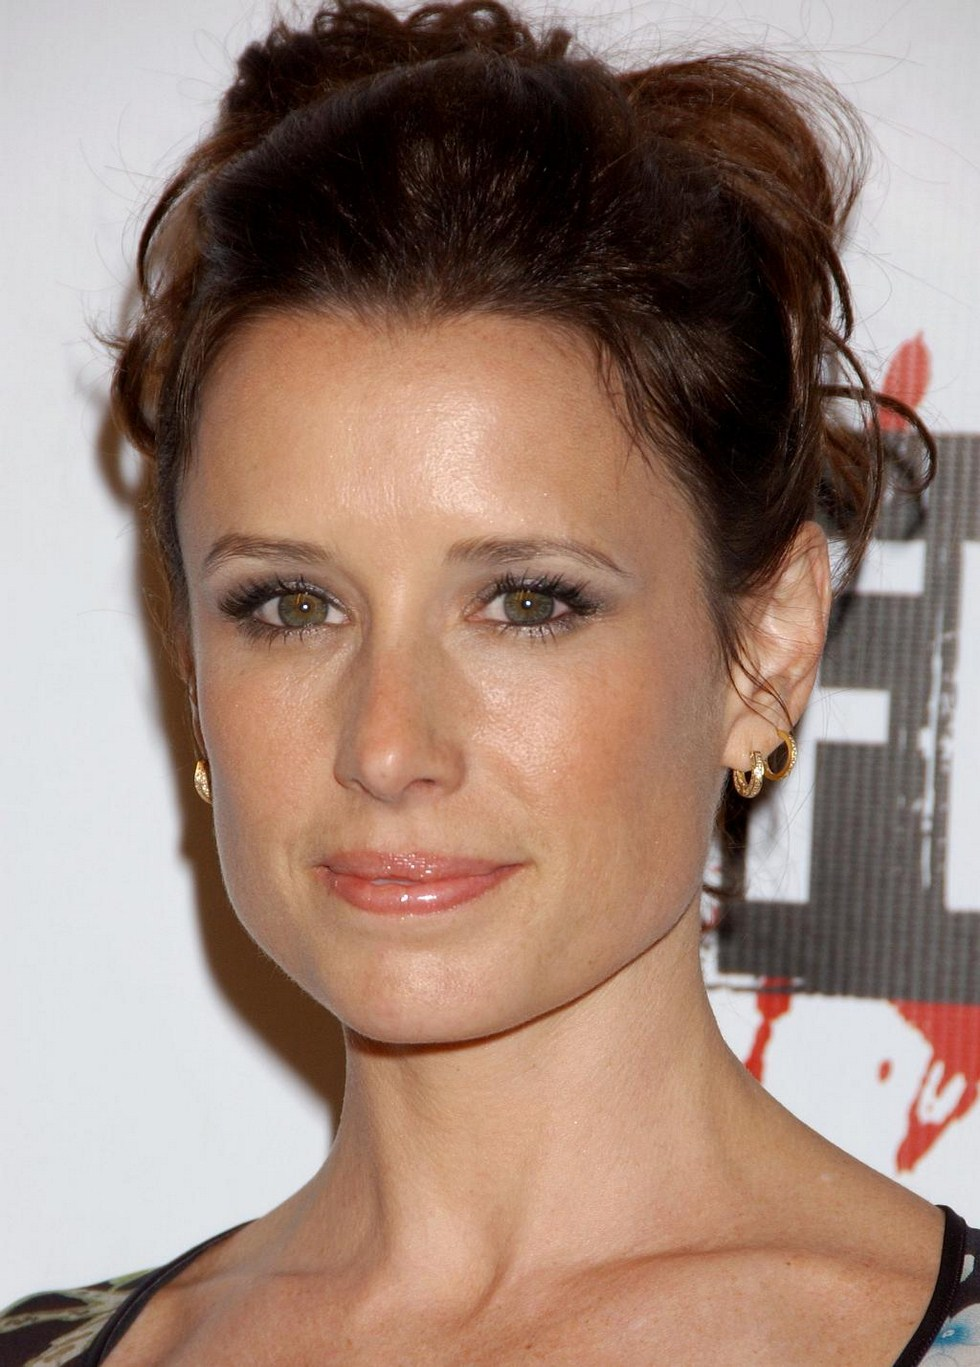 Shawnee smith at fearnet launch party photos funrahi